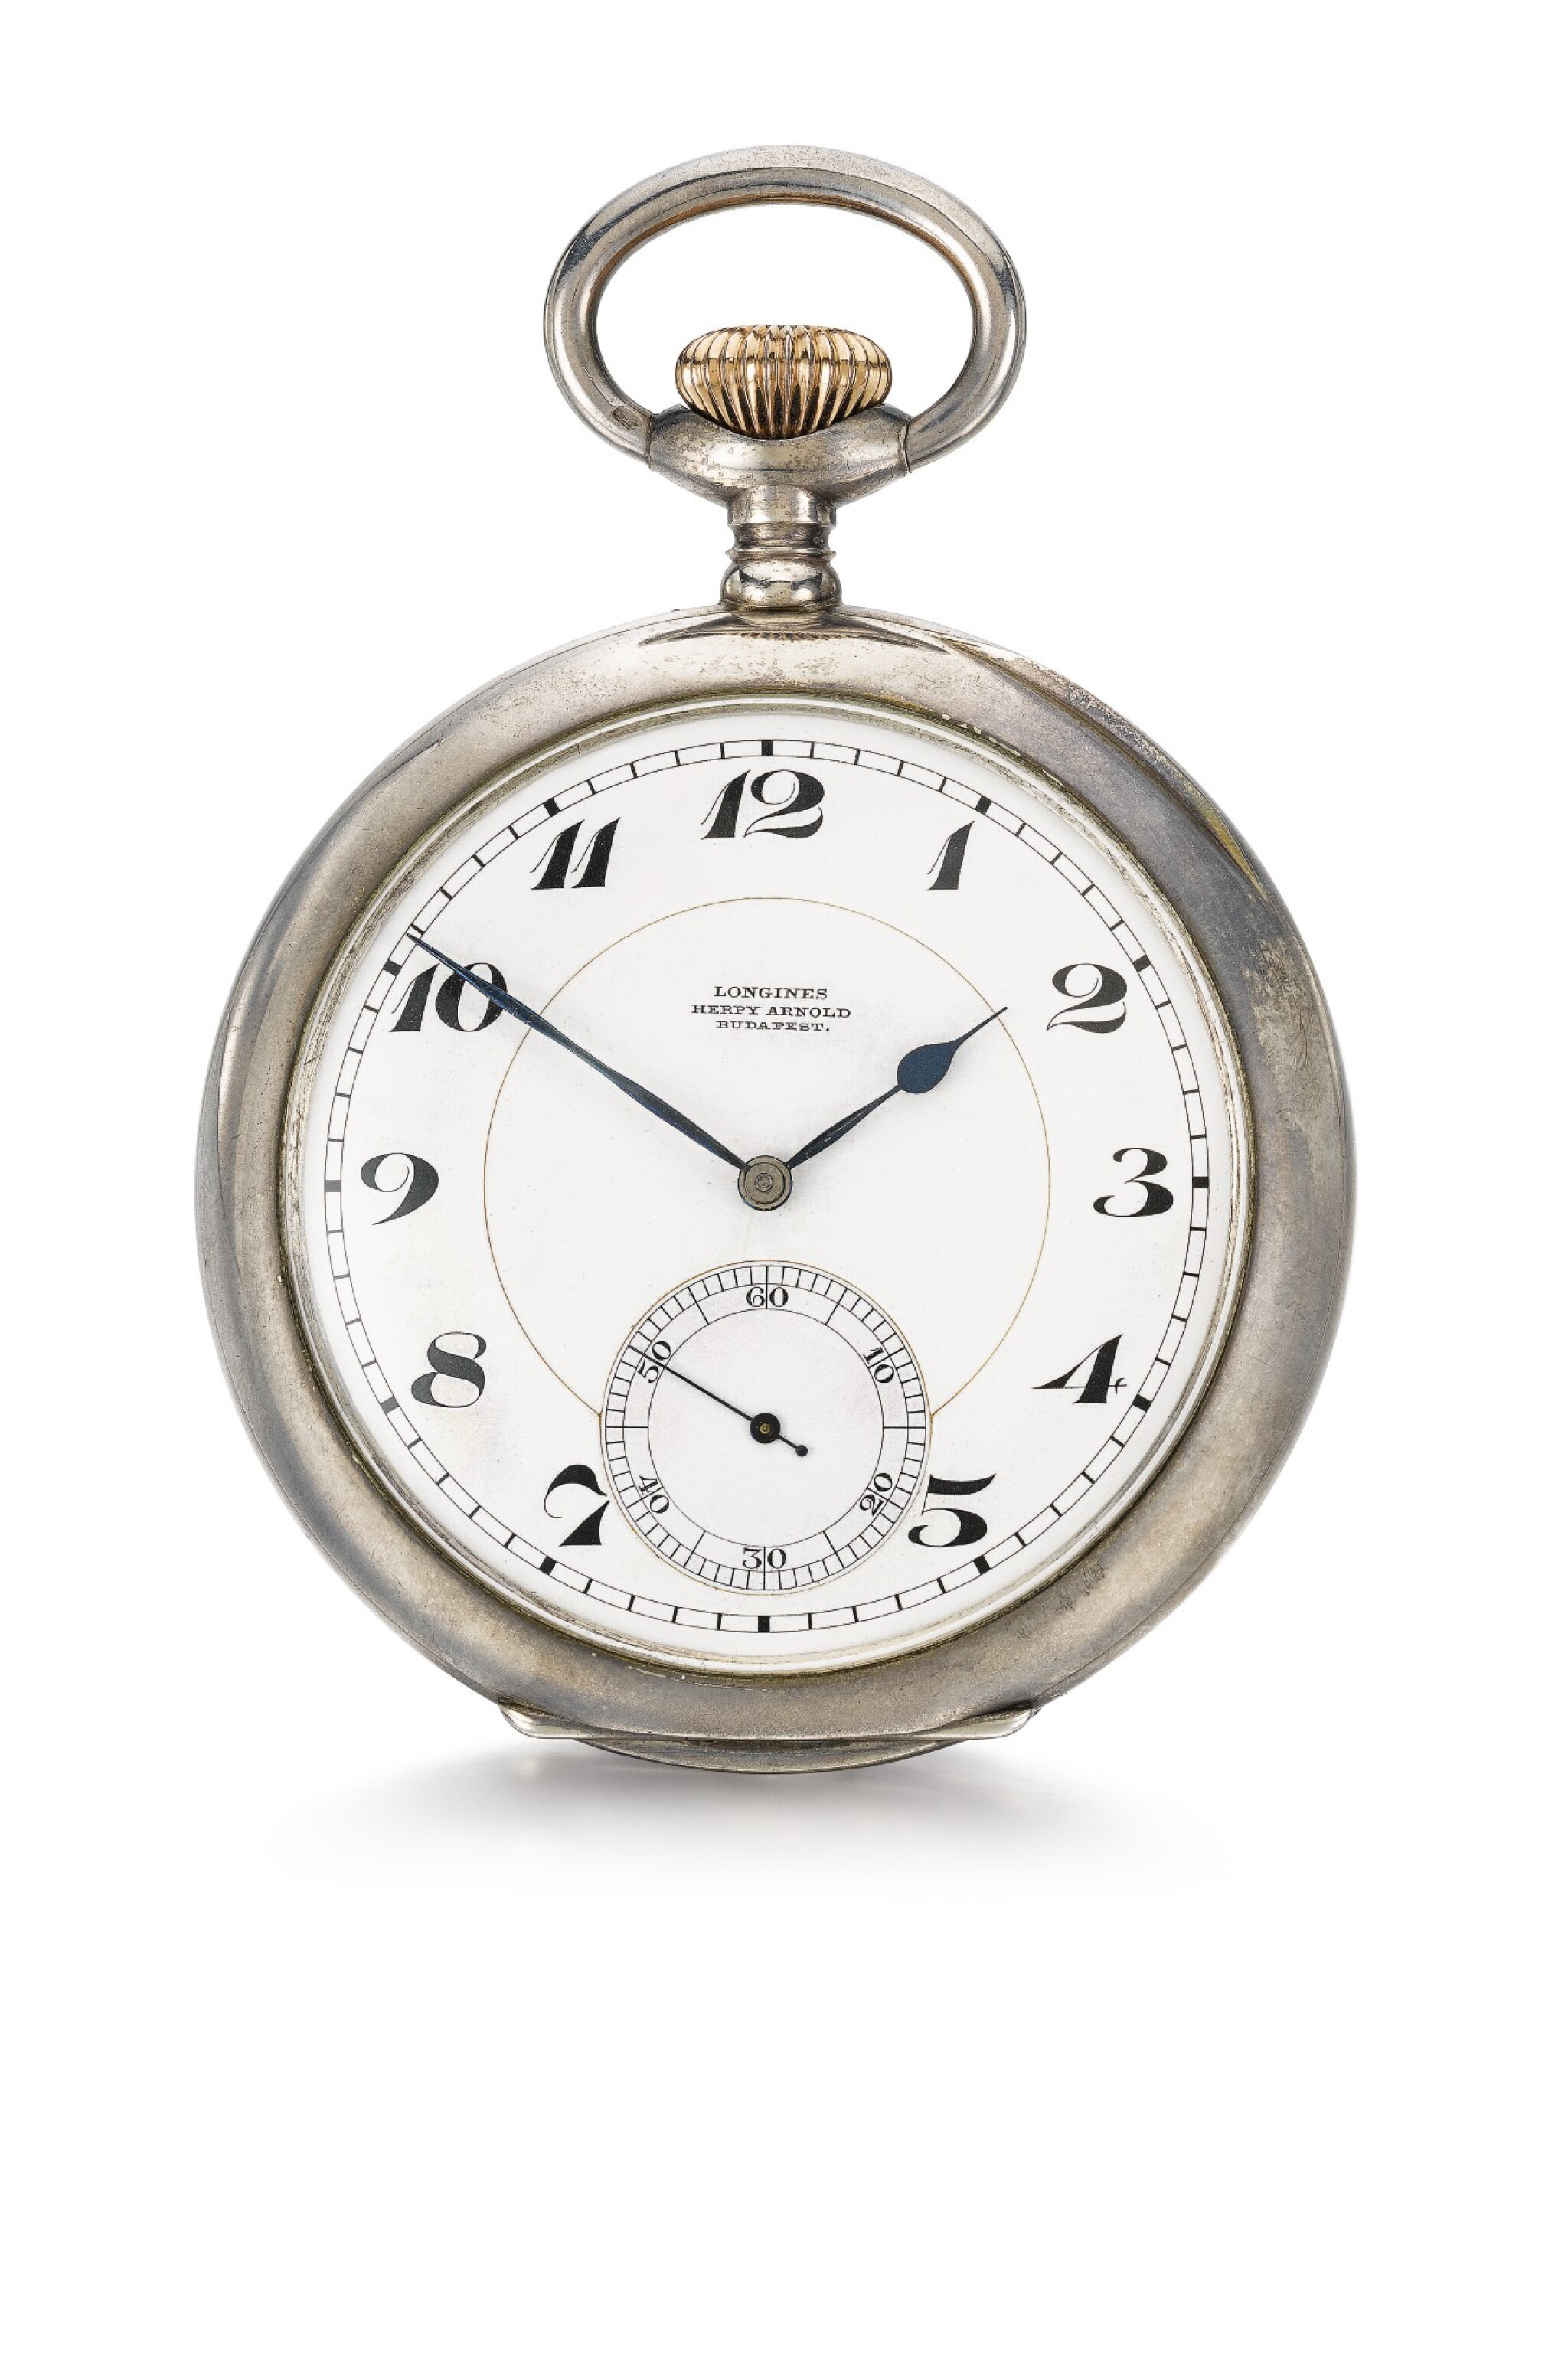 View full screen - View 1 of Lot 623. A LARGE AND EXCEPTIONALLY RARE SILVER OPEN-FACED KEYLESS WATCH THE LONGINES MOVEMENT LATER MODIFIED TO INCORPORATE A ONE MINUTE FLYING TOURBILLON WITH SPRING DETENT CHRONOMETER ESCAPEMENT ORIGINALLY RETAILED BY HERPY ARNOLD, BUDAPEST, 1925, NO.4190747 [ 罕有大型銀懷錶,浪琴機芯加裝一分鐘飛行陀飛輪連彈簧鎖止式天文鐘擒縱系統 ,原零售商為布達佩斯HERPY ARNOLD,年份約1925,編號4190747].